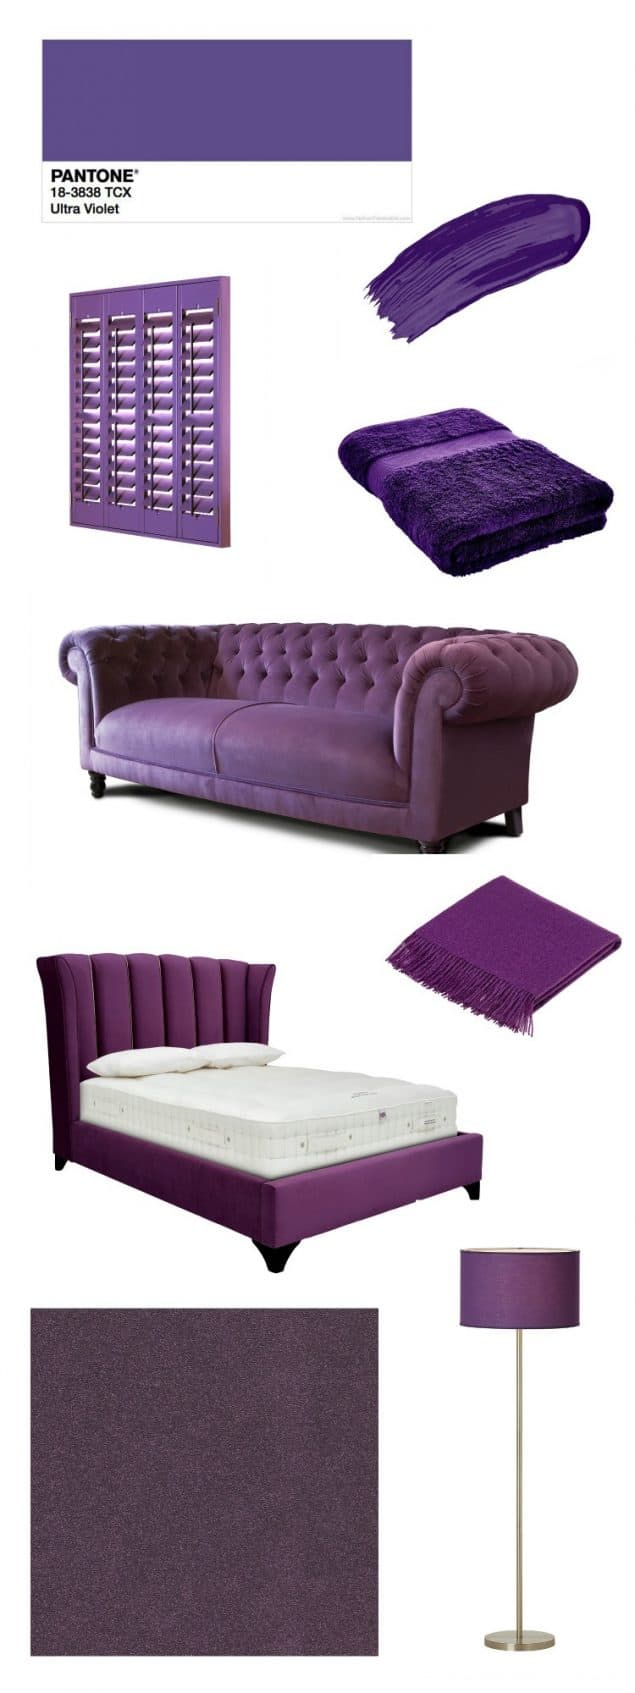 Pantone Ultra Violet Home Interior Products